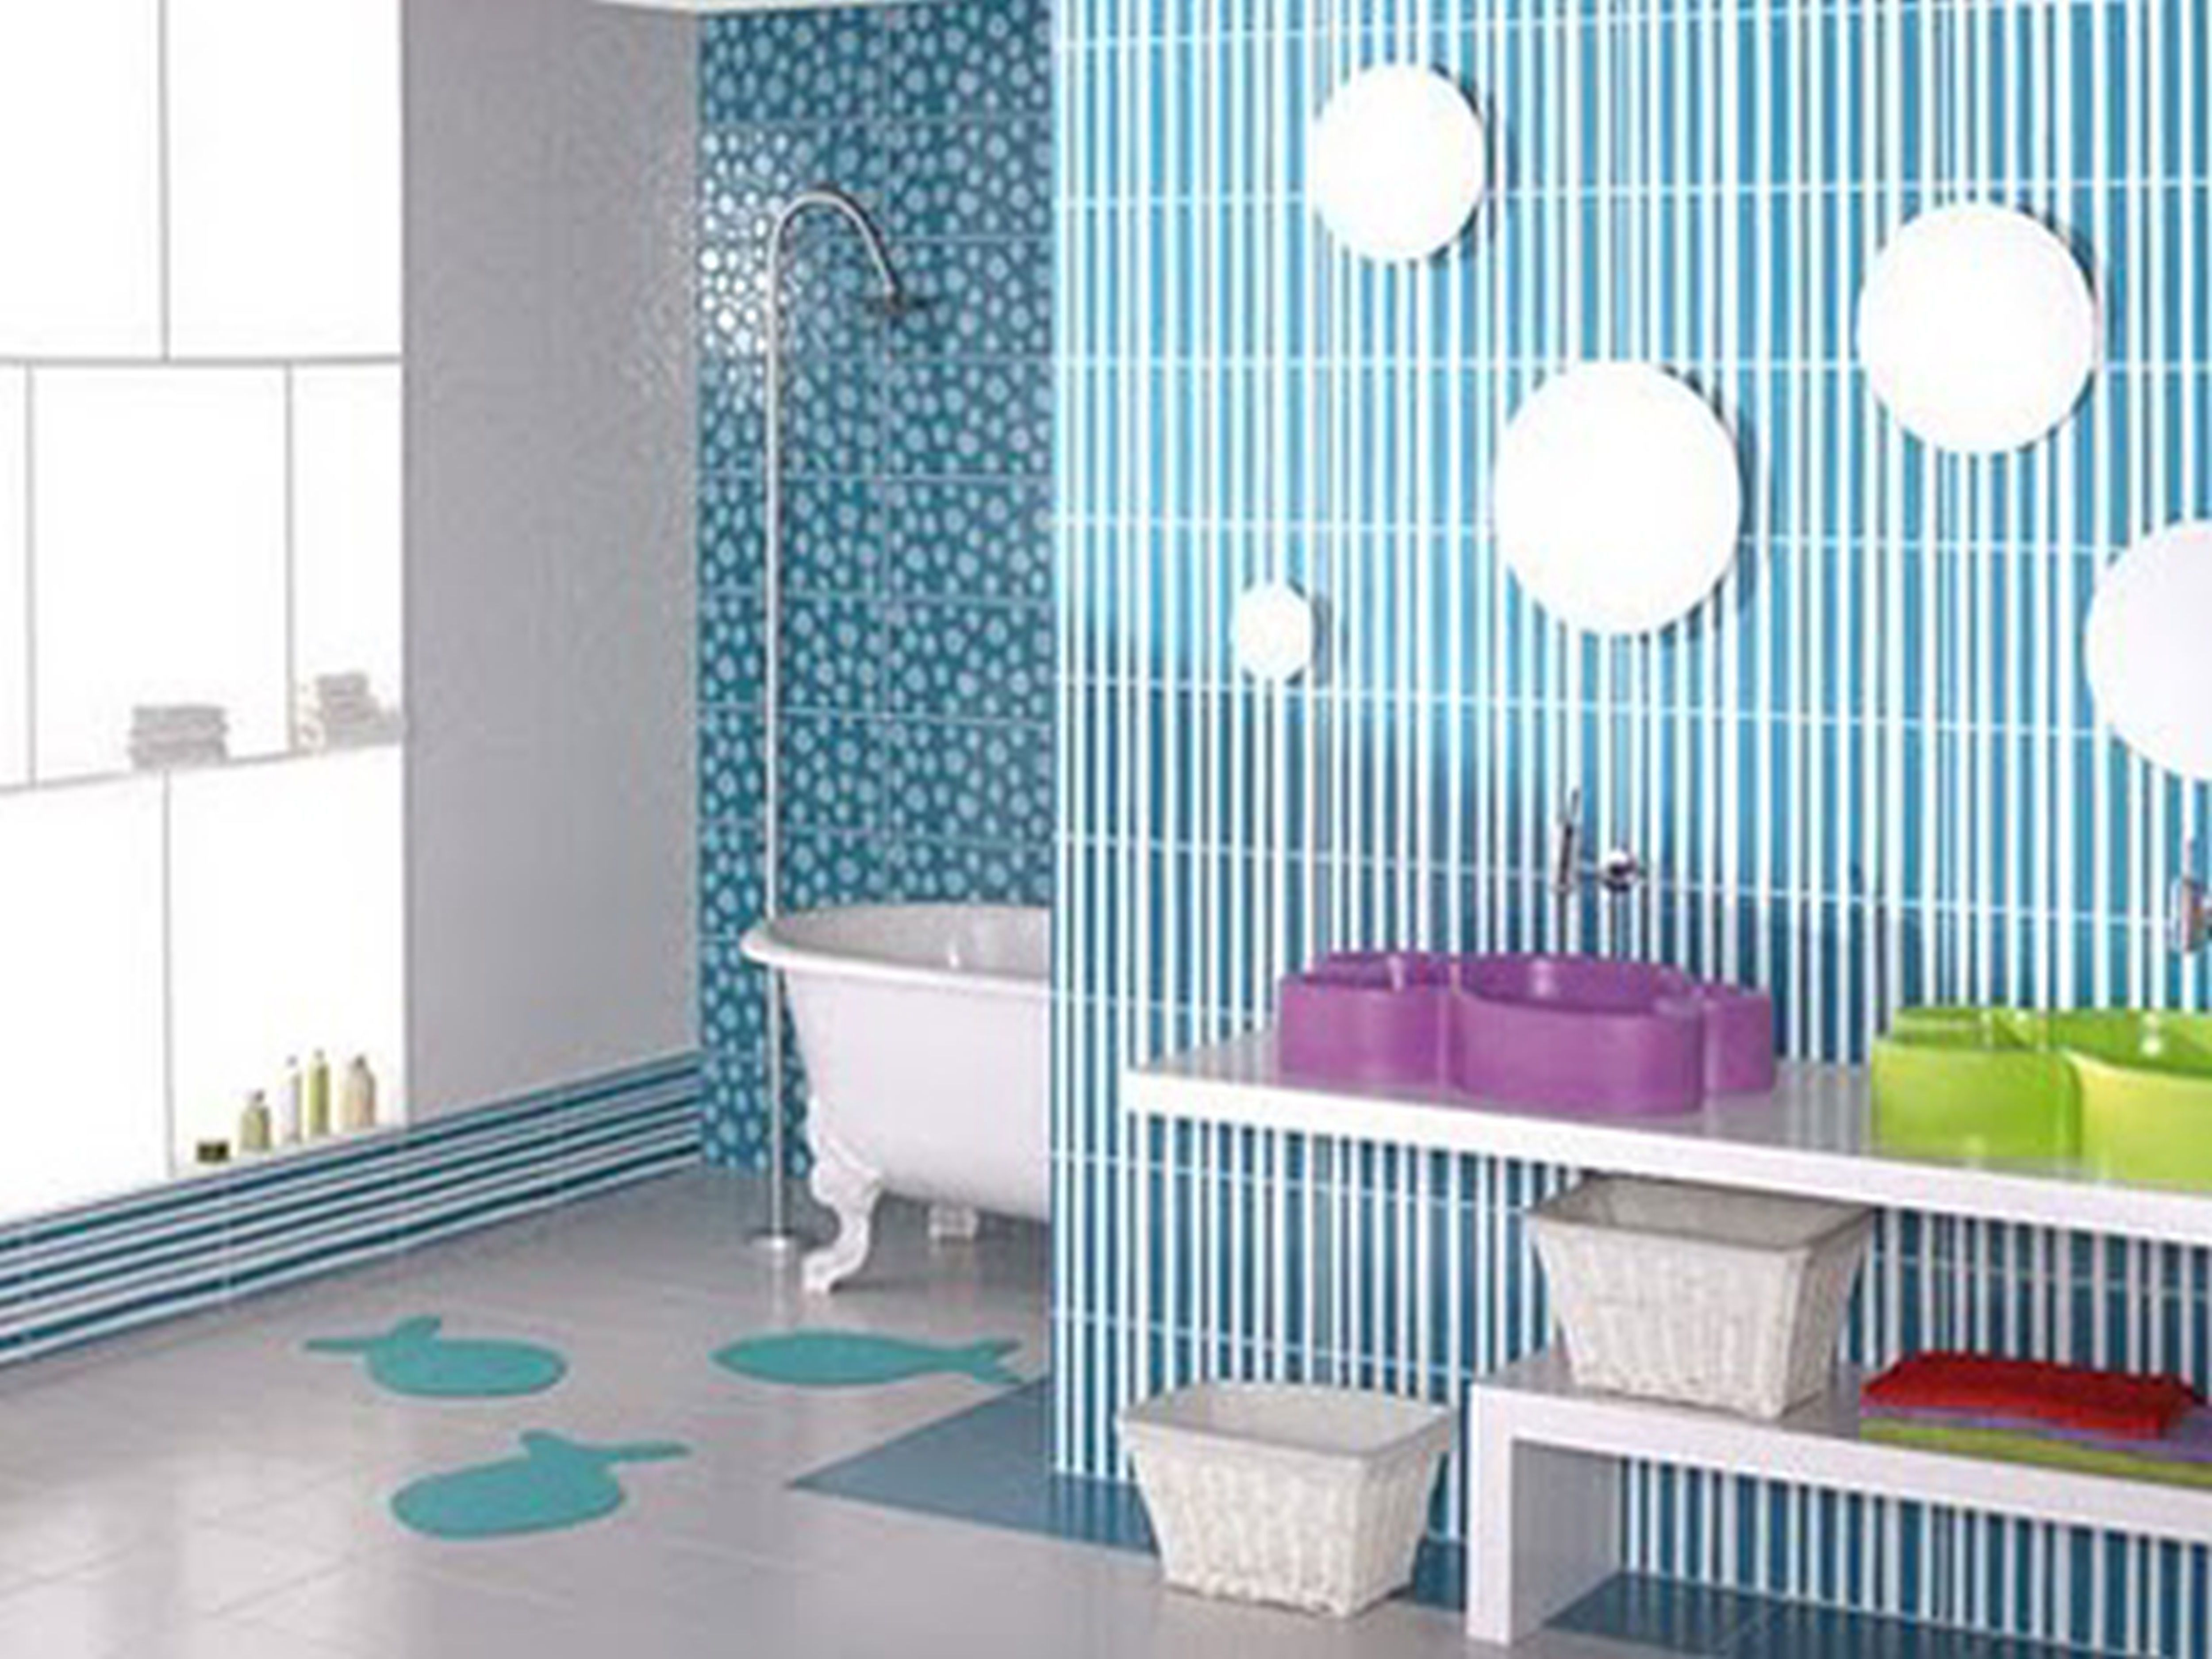 Captivating 23+ Unique And Colorful Kids Bathroom Ideas, Furniture And Other Decor  Accessories Images